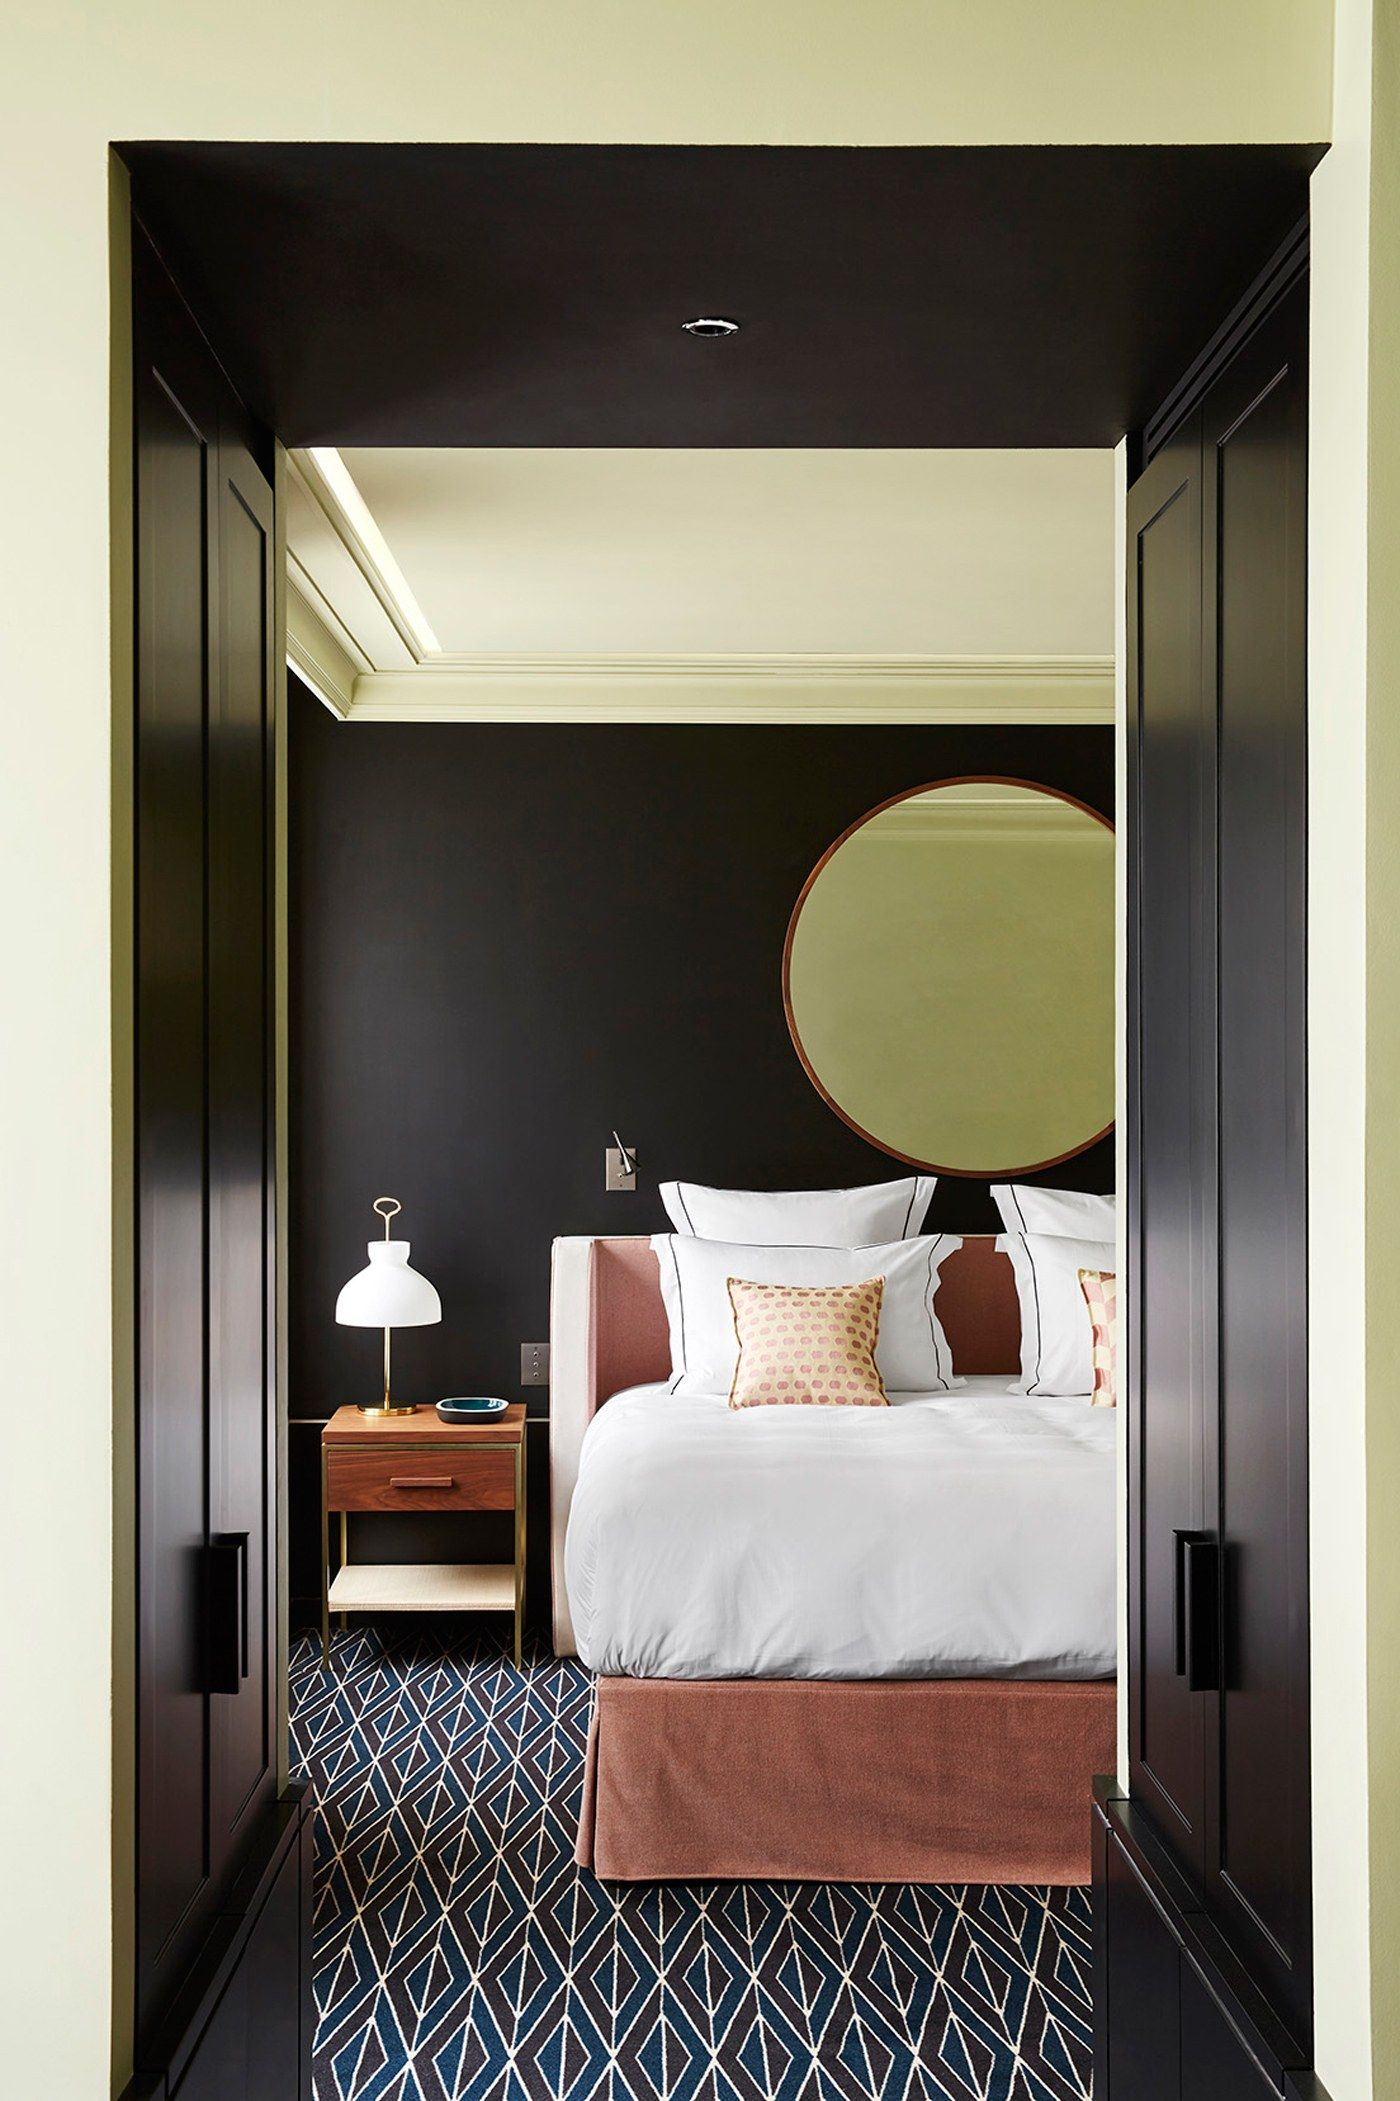 Hotel Room Design: 12 Très Chic Boutique Hotels In Paris